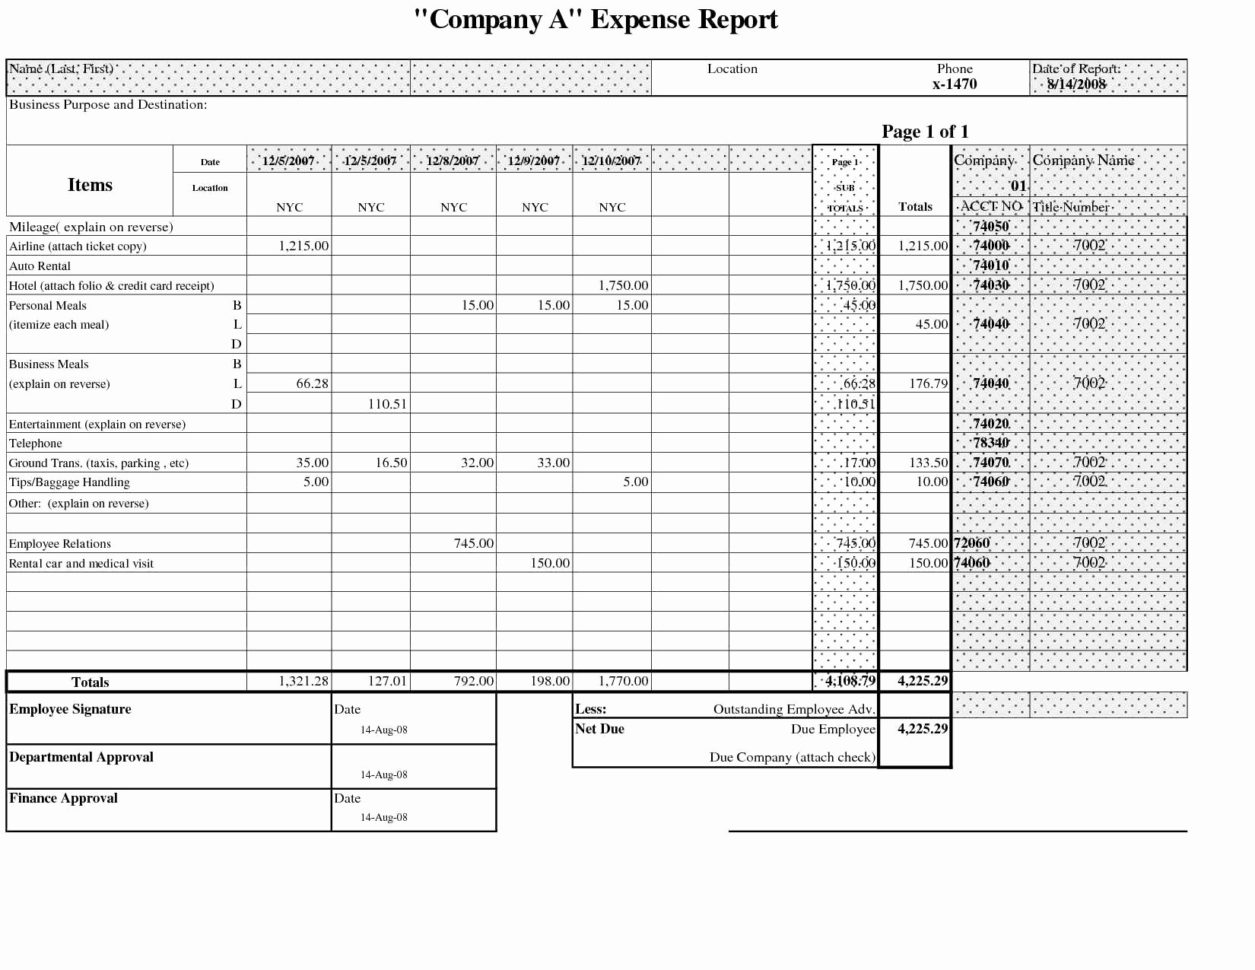 Business Expenses Spreadsheet Elegant Business Expense Sheet Within Business Finance Spreadsheet Template